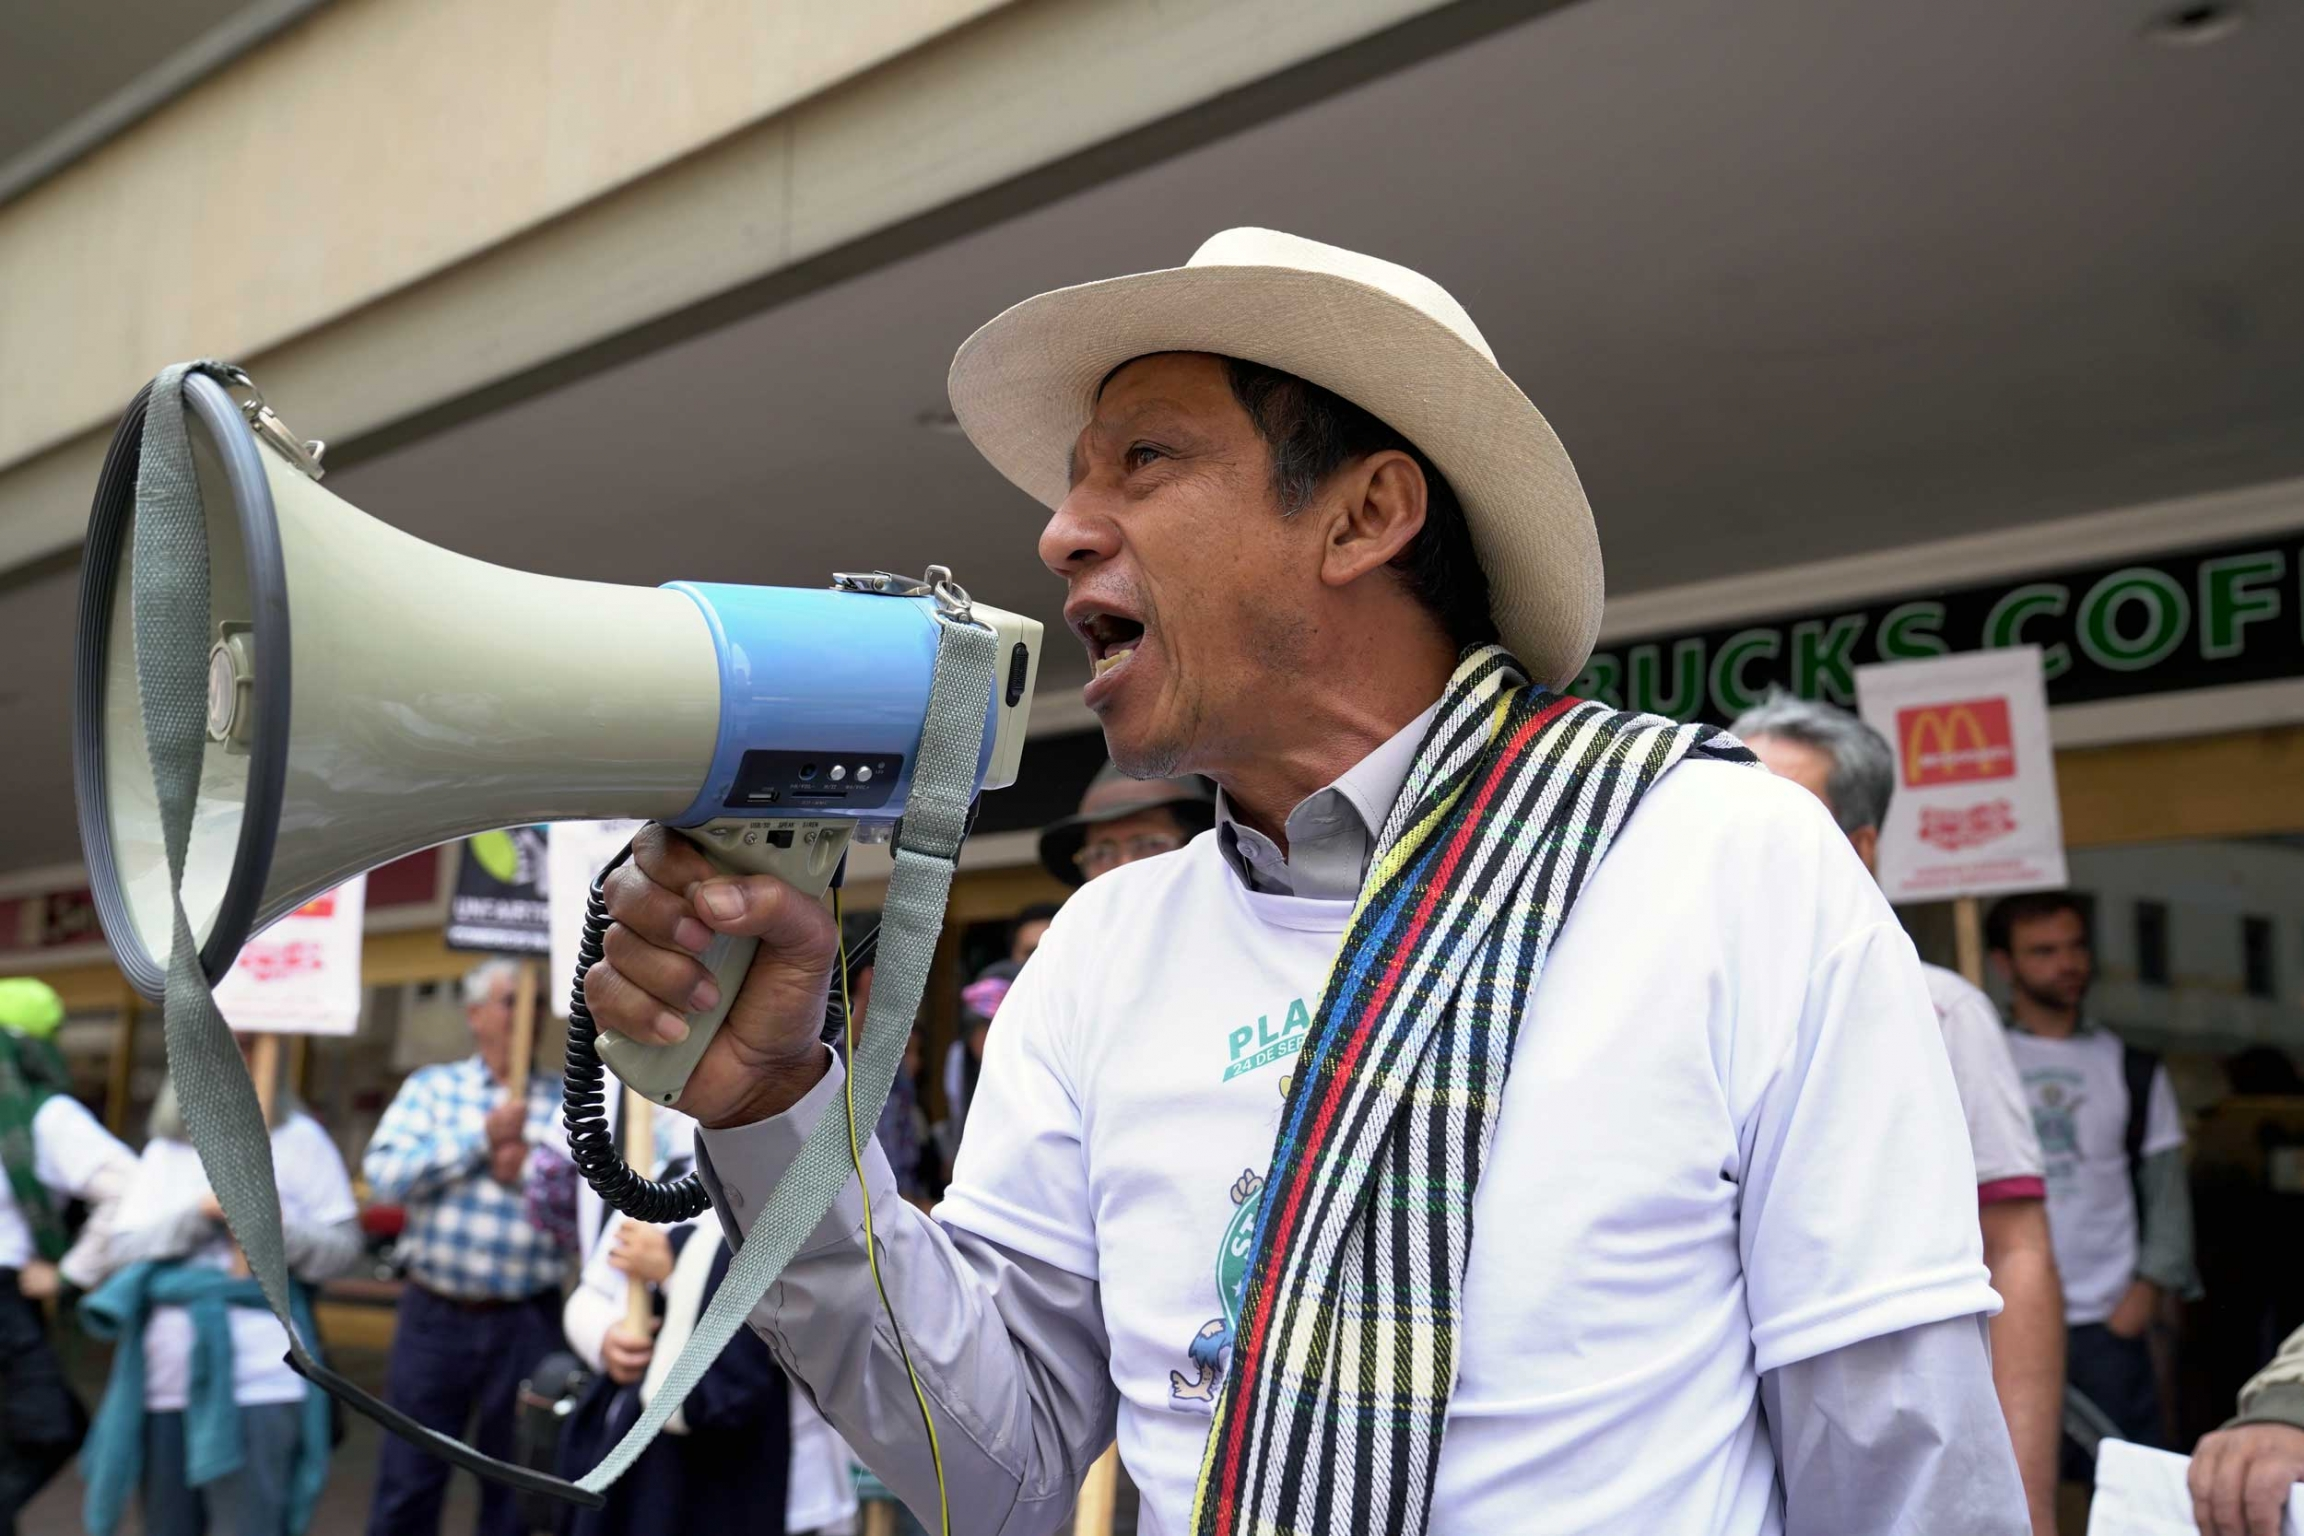 A man in a straw hat holds a megaphone outside a Starbucks coffee.